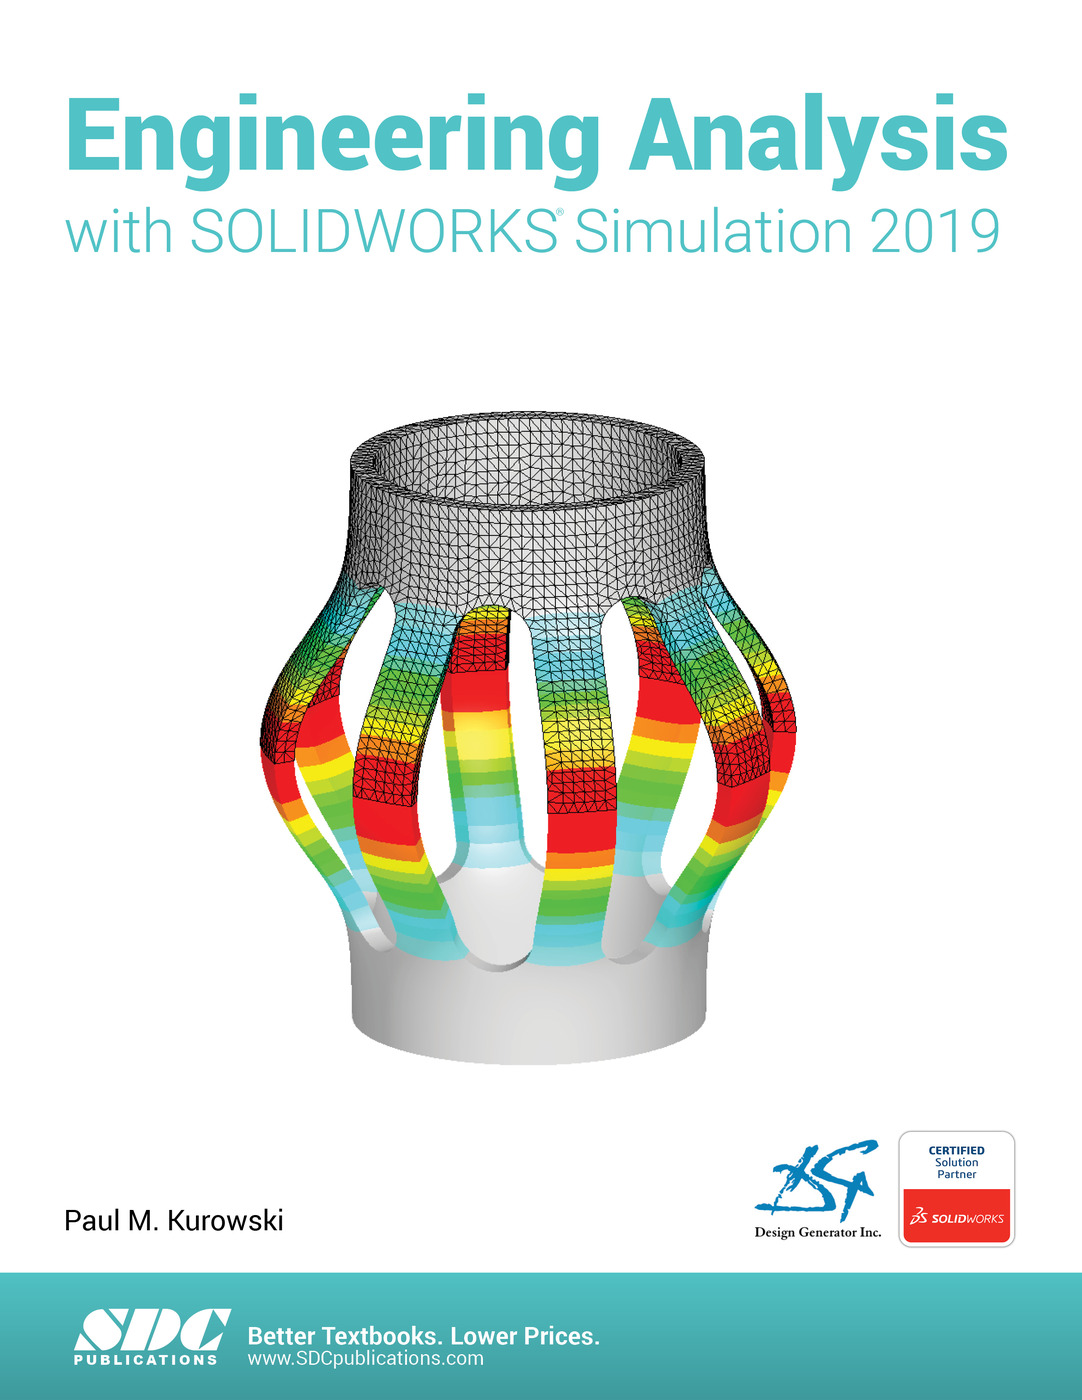 Engineering Analysis with SOLIDWORKS Simulation 2019: 1st Edition (Paperback) book cover